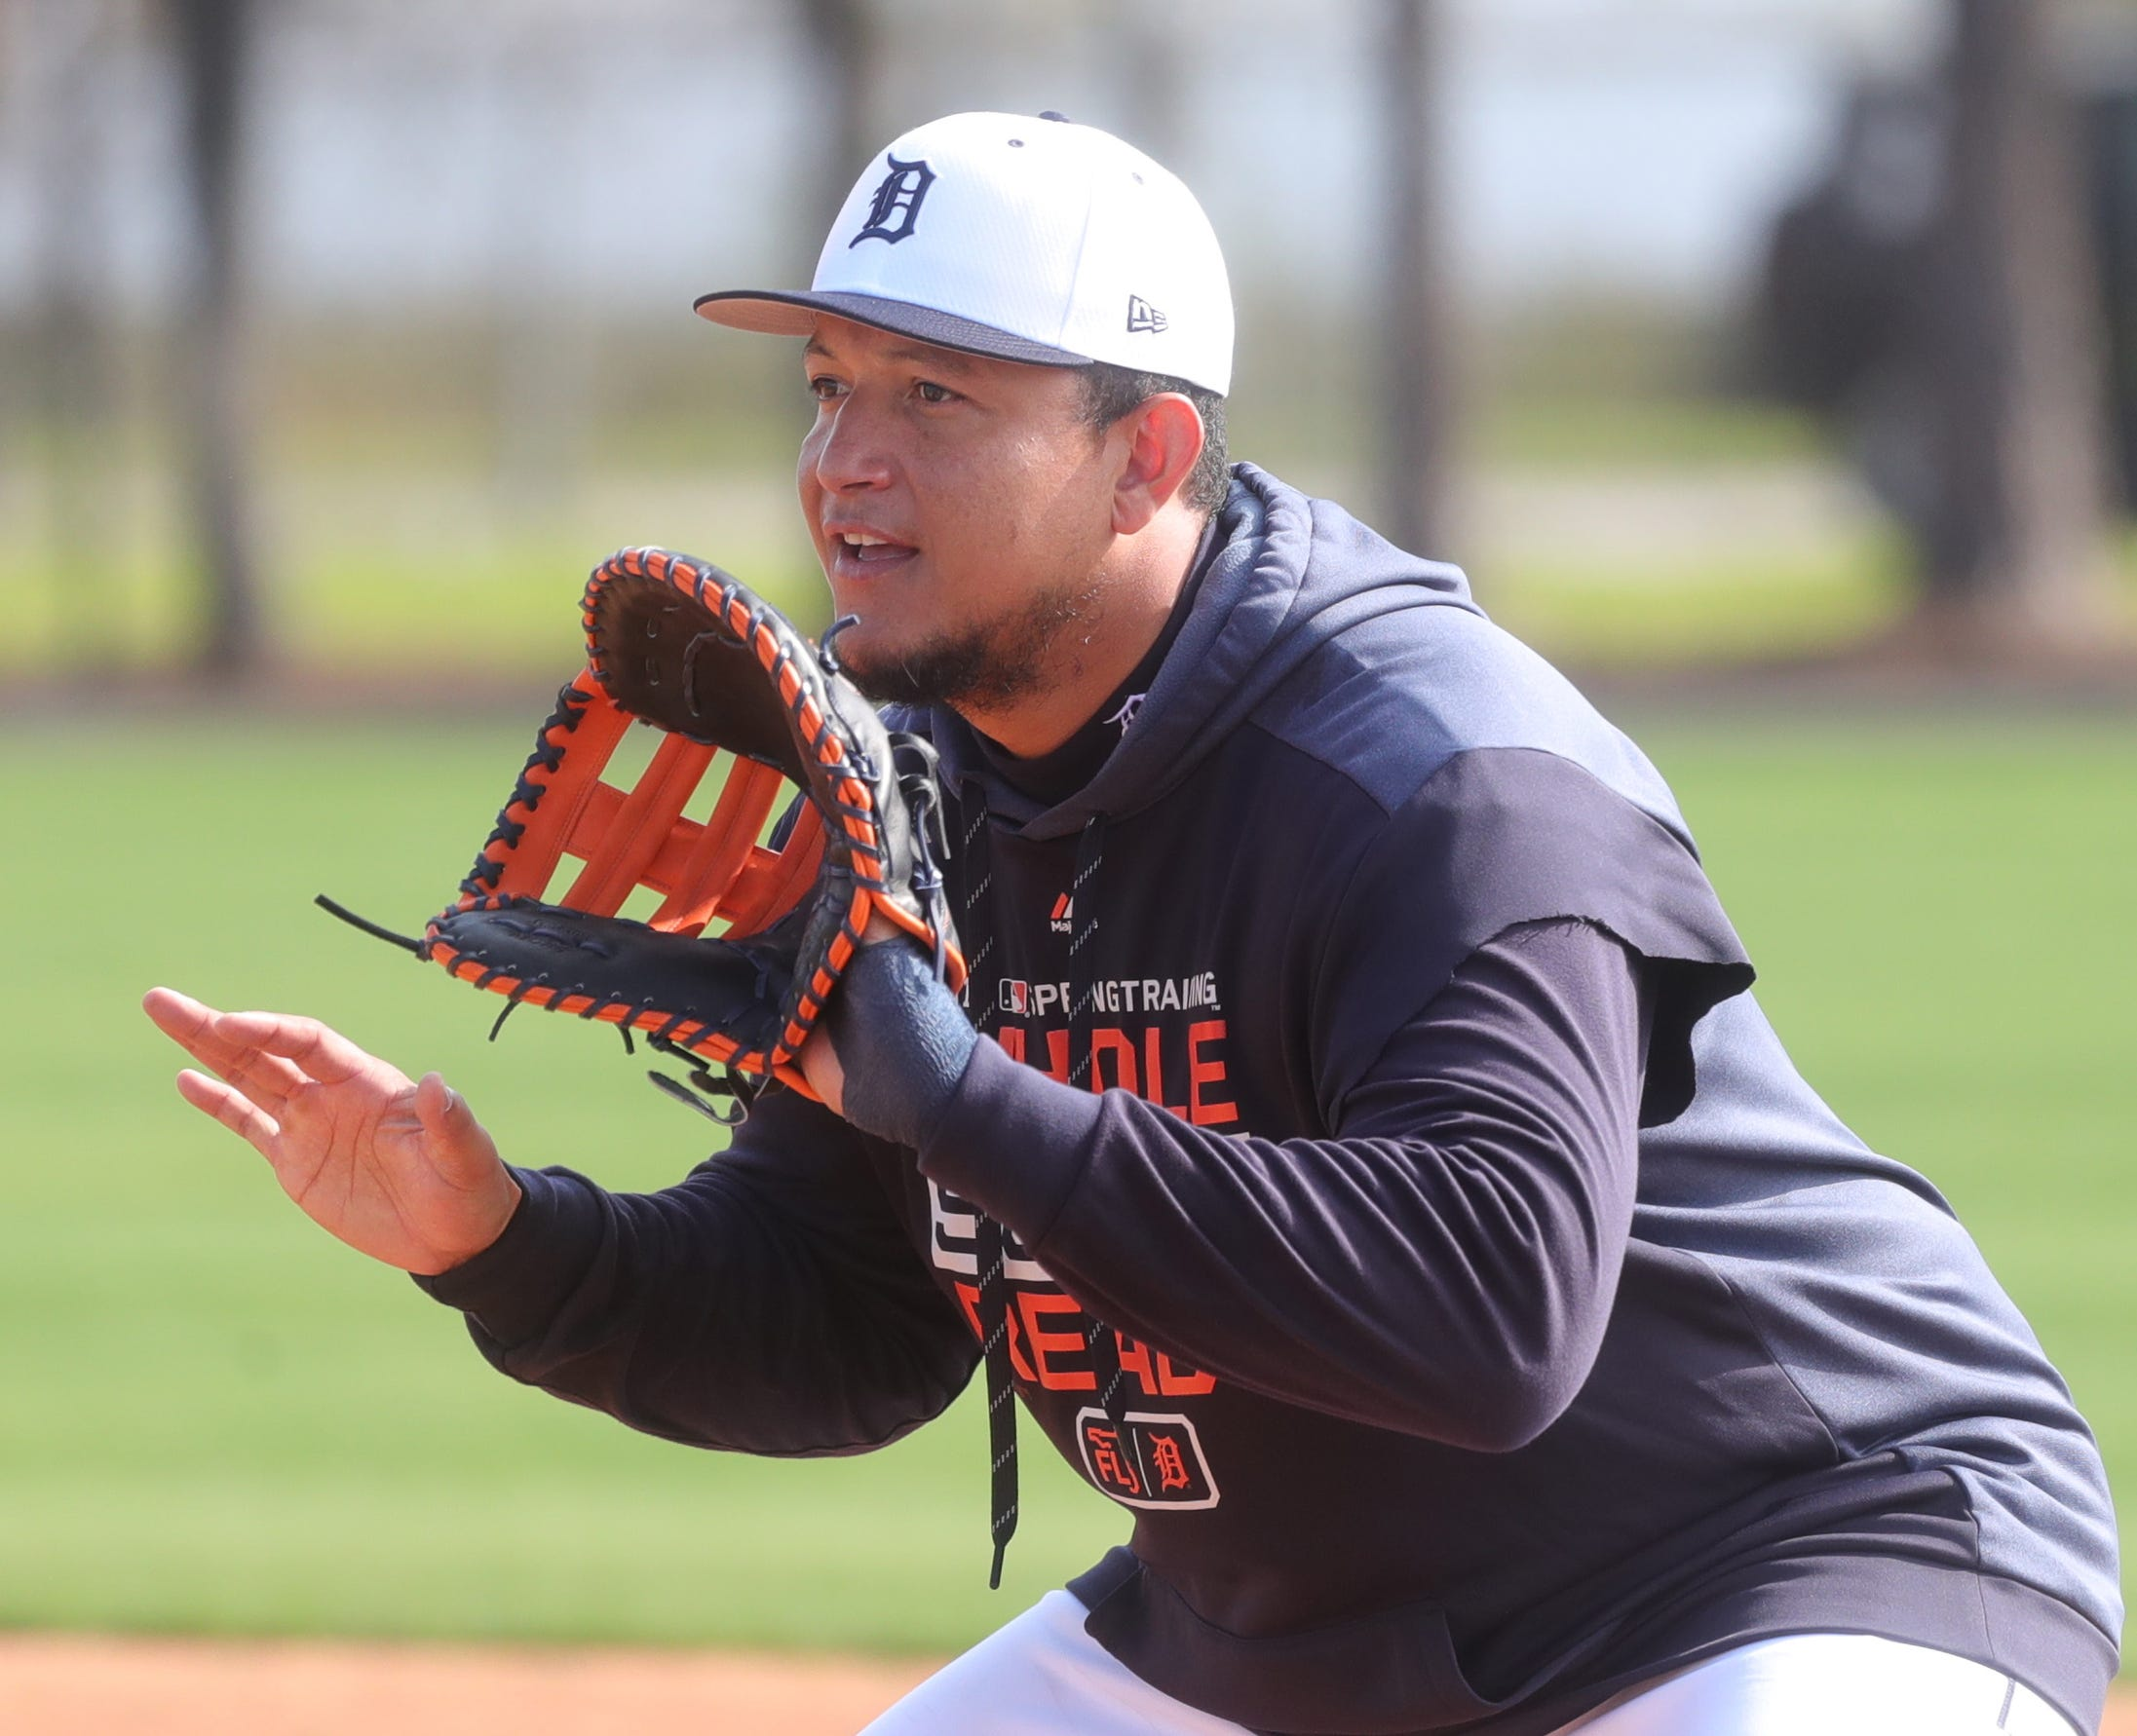 Tigers first baseman Miguel Cabrera goes through drills during spring training on Tuesday, Feb. 19, 2019, at Joker Marchant Stadium in Lakeland, Florida.